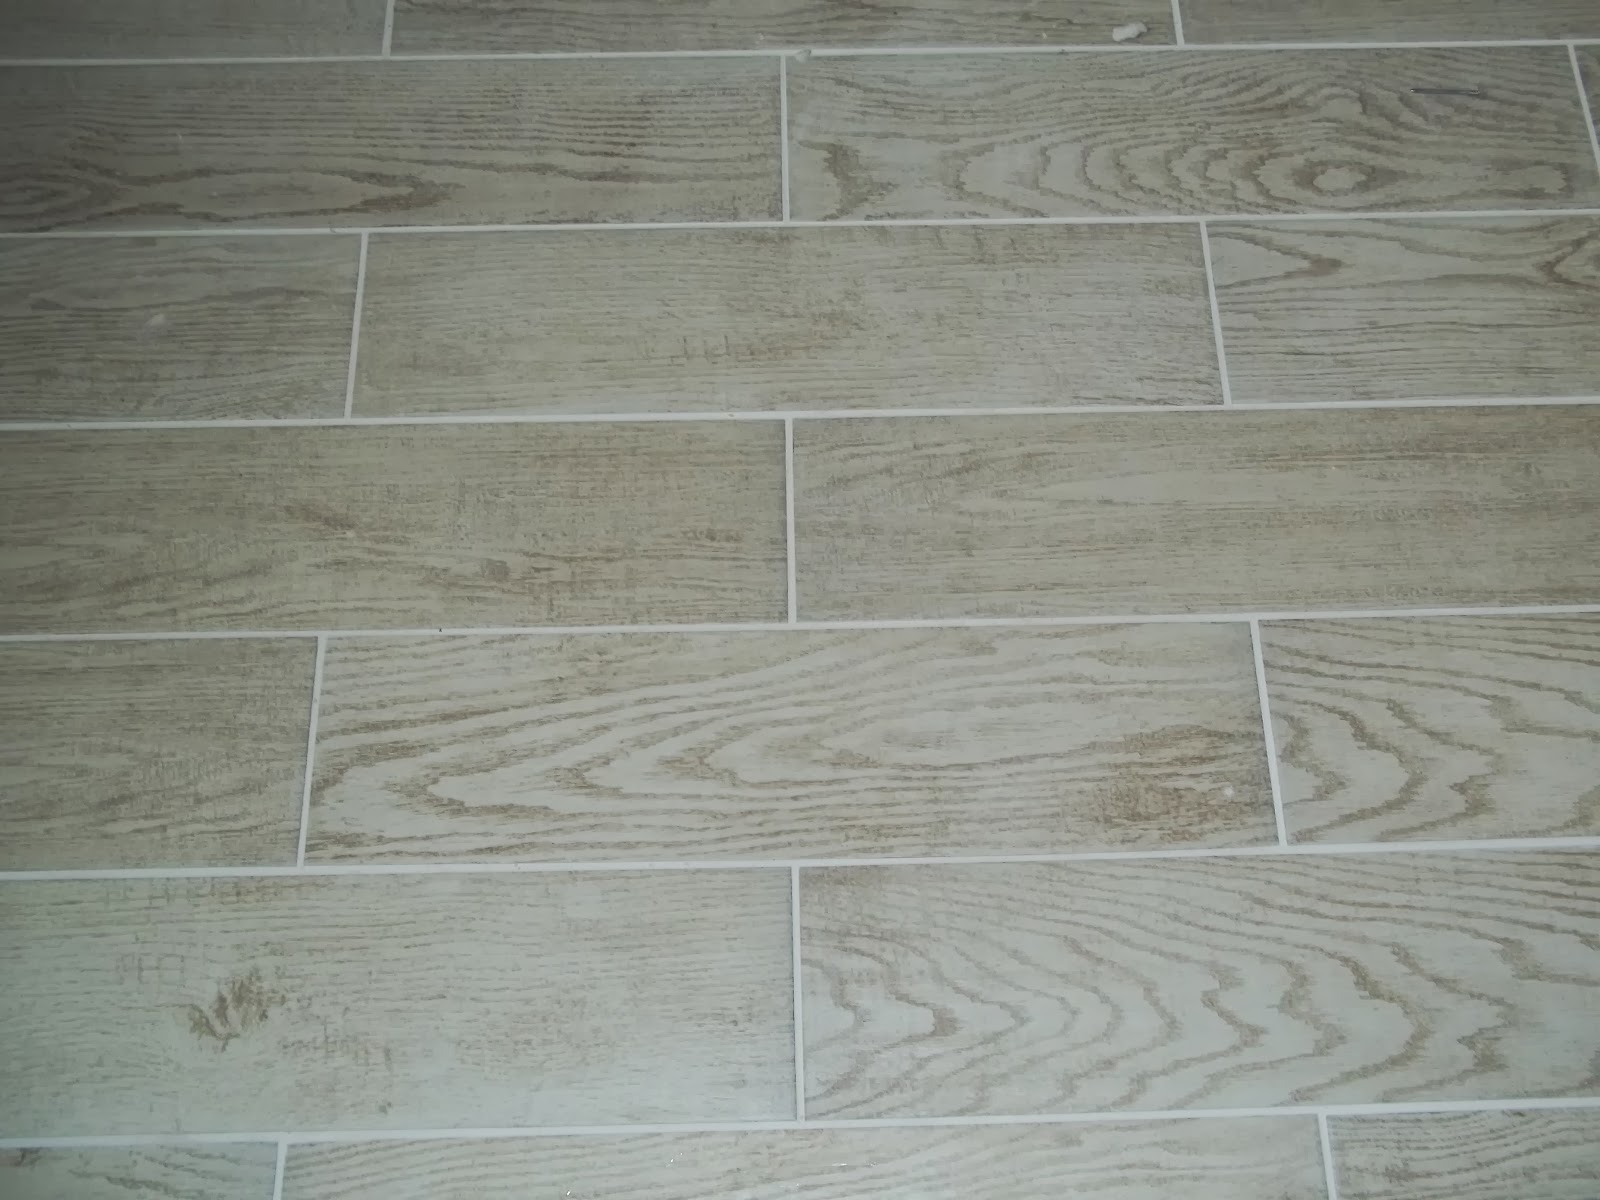 1 8 Grout Line Tile Installtion Faq: Sanded Grout Or Un-sanded Grout